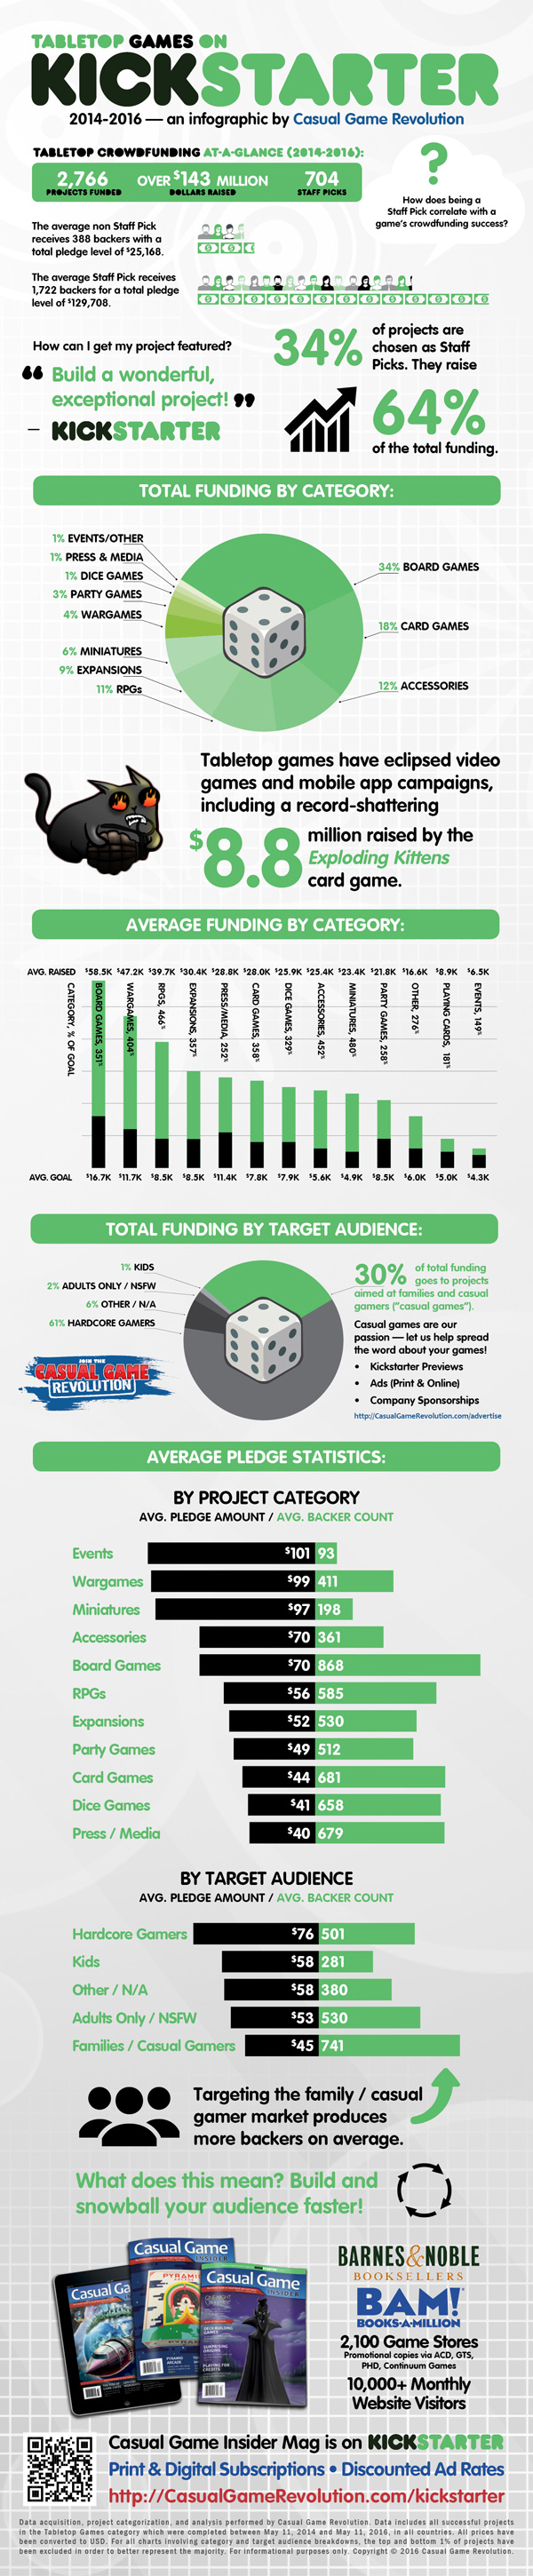 Tabletop Games on Kickstarter 2014-2016 Infographic - Courtesy Casual Game Revolution